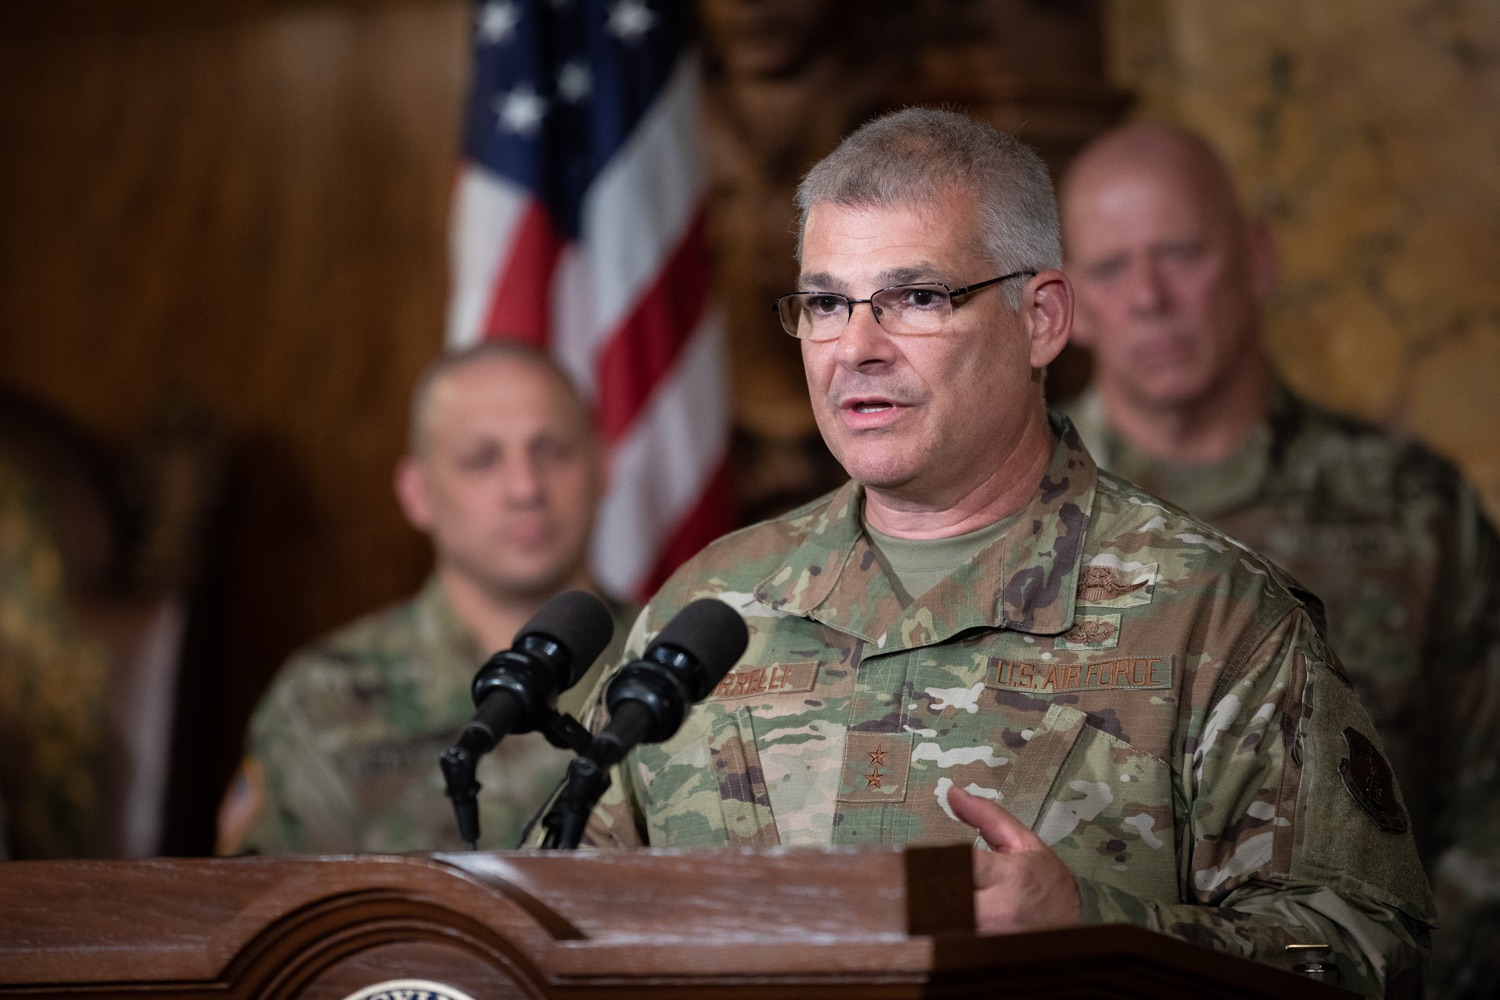 "<a href=""http://filesource.abacast.com/commonwealthofpa/photo/17423_gov_trip_recap_dz_016.jpg"" target=""_blank"">⇣ Download Photo<br></a>Harrisburg, PA  Adjutant General Maj. General Tony Carrelli about his recent visit to Lithuania and Poland. Governor Tom Wolf today highlighted the second half of his trip abroad, including visiting with more than 500 PA National Guard (PNG) troops in Poland, and honoring the Tree of Life synagogue victims at the Auschwitz-Birkenau Memorial. Tuesday, September 17, 2019"